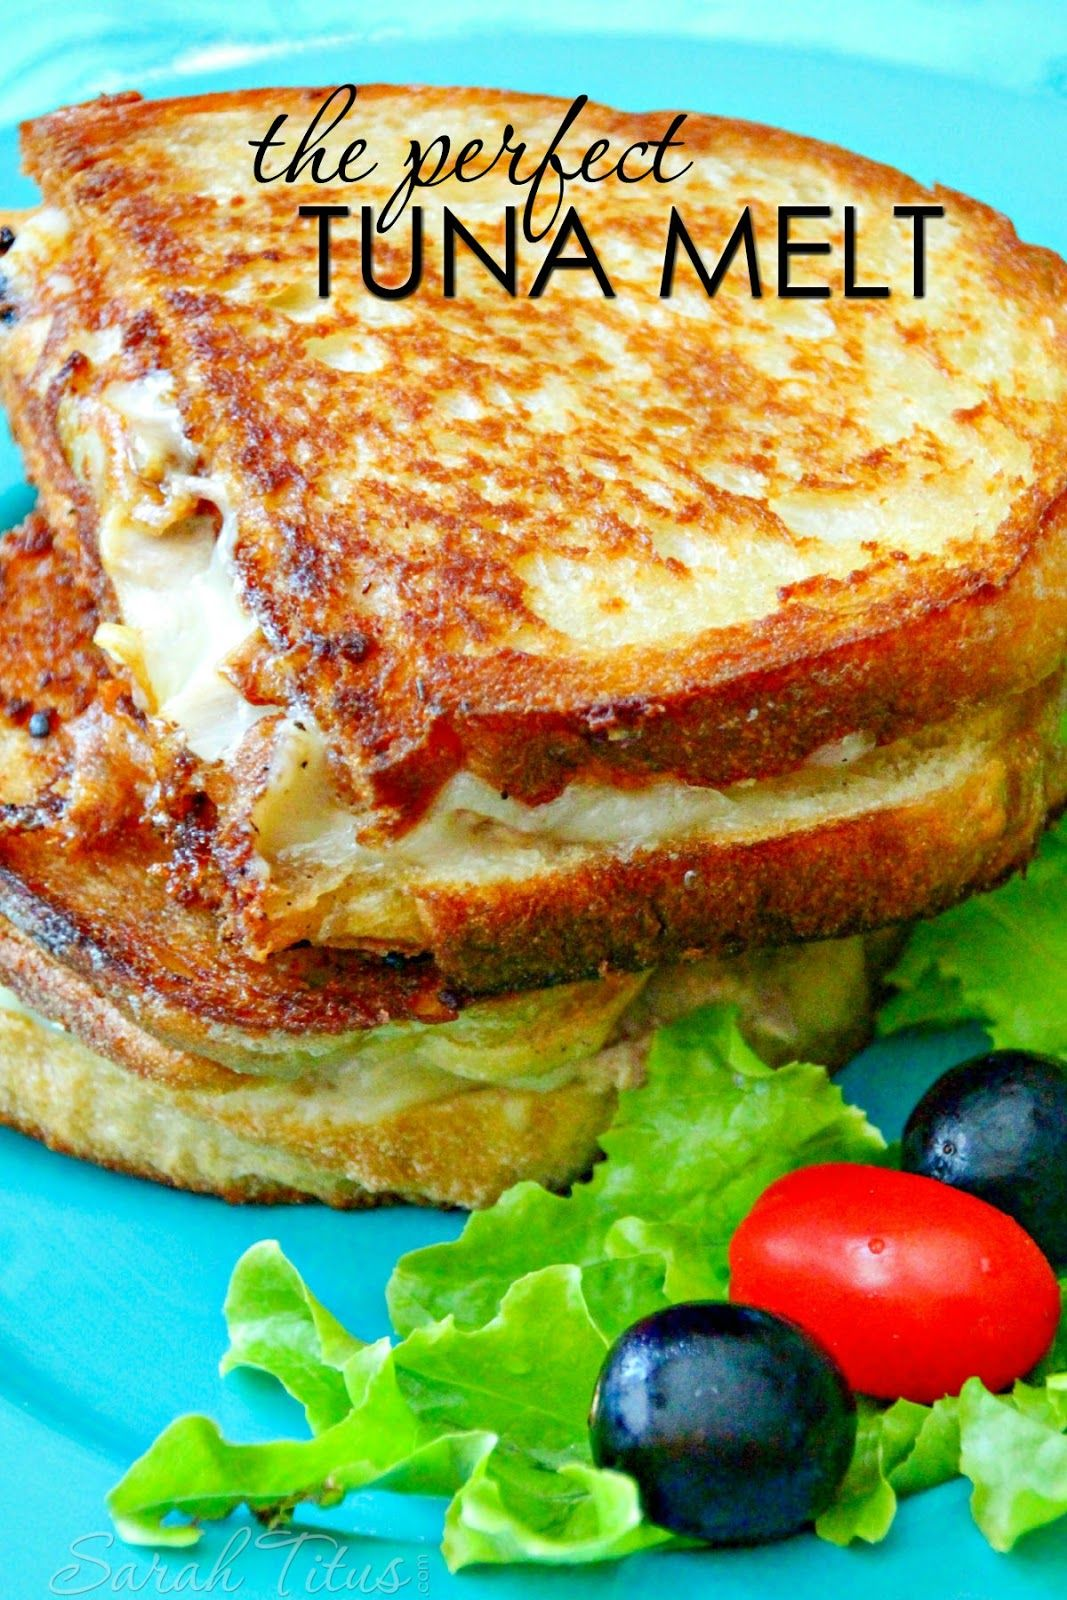 YUM! But seriously, 3-4 tablespoons cup of mayo? I used 2 tablespoons. because if I would have used 3-4 tablespoons of mayo, I'm positive th...